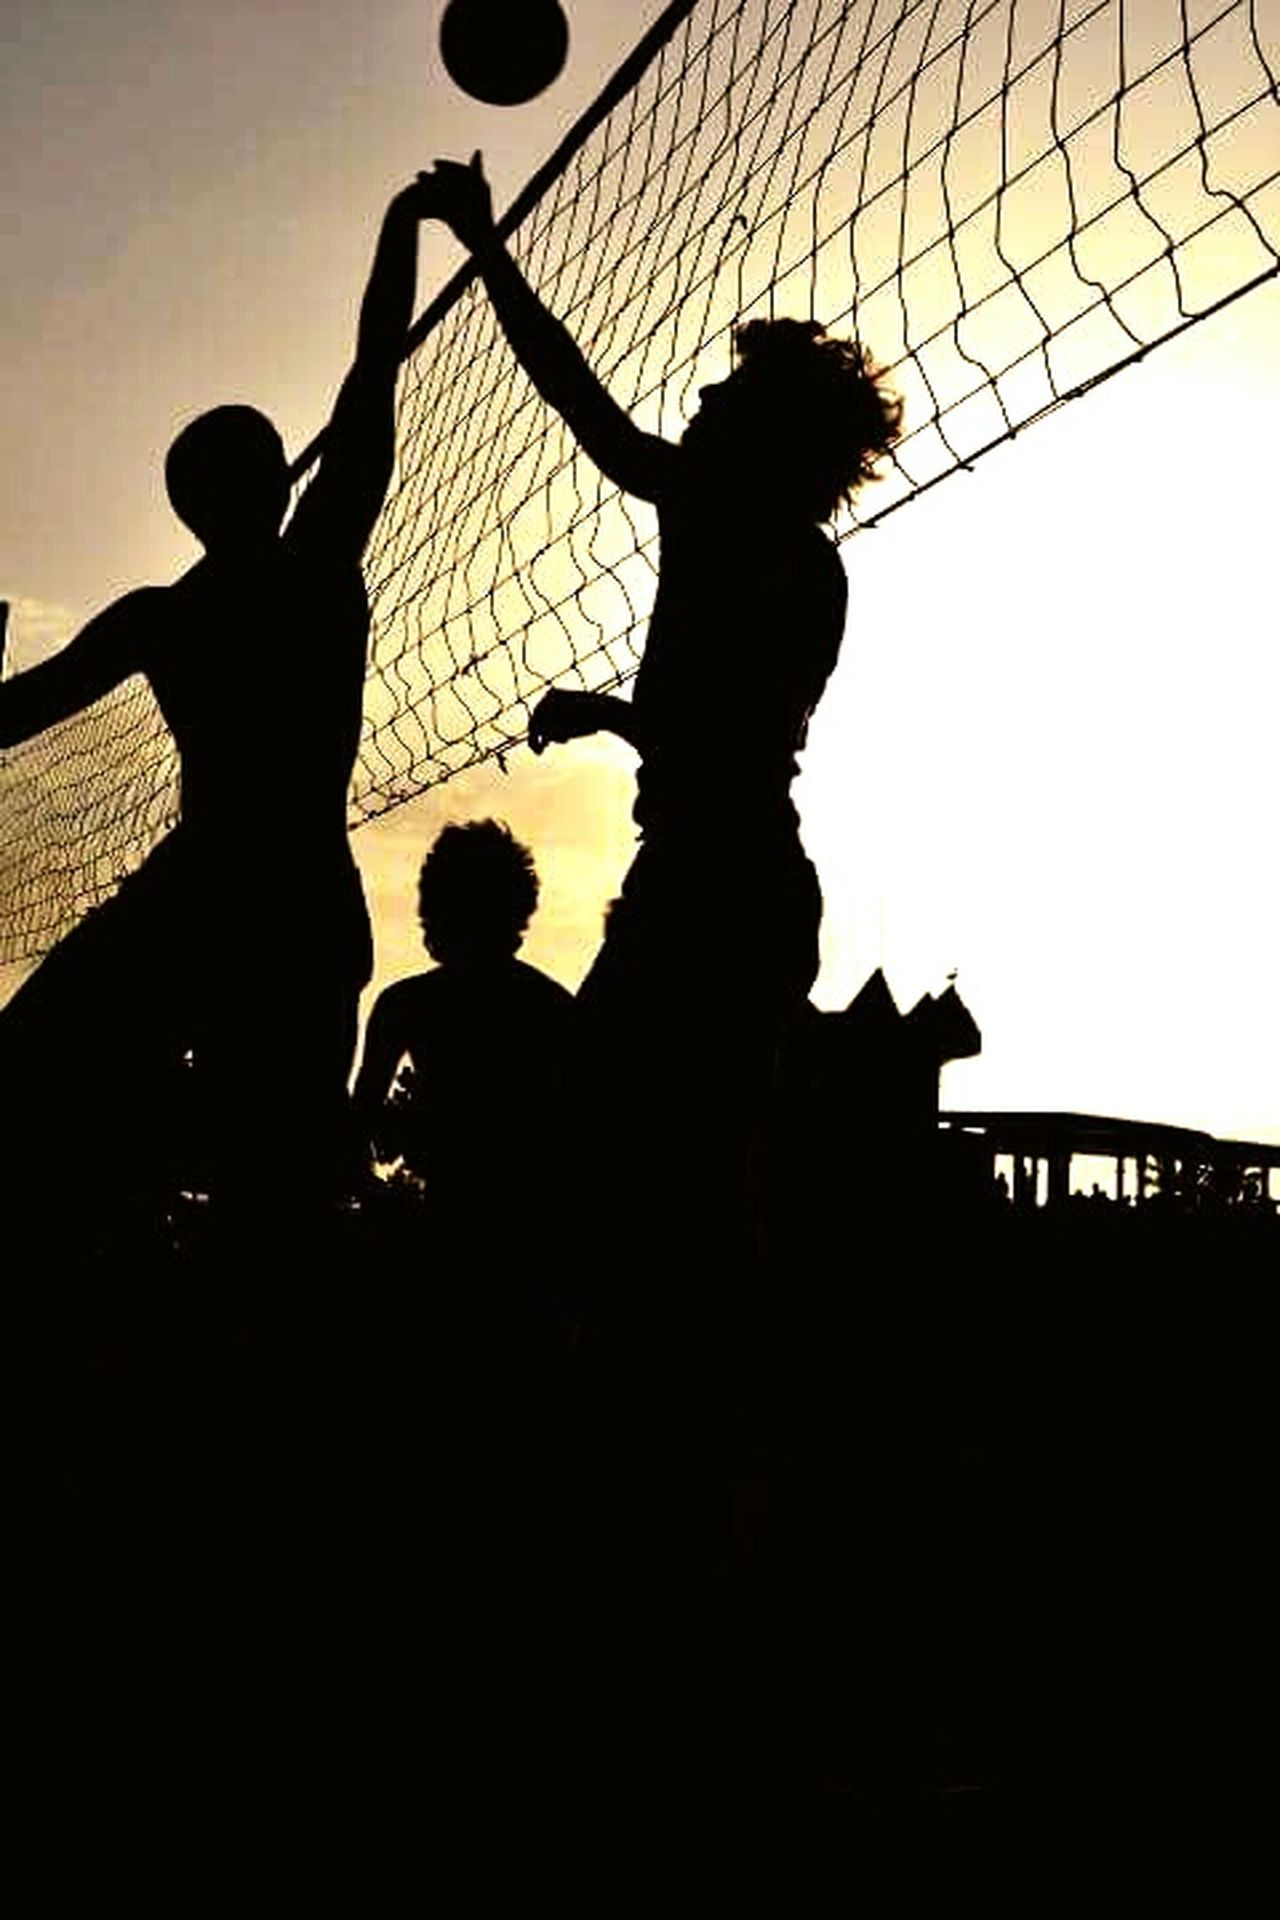 Volleyball Silhouette Gettyimages Balls Friends From My Point Of View Sky Paradise EyeEm Minimalism Istockphoto Getty Images EyeEm Team Minimal Germany Berlin England🇬🇧 Catalunya Berlin Photography Barcelona Summertime Happiness Summer Deutschland Streetphotography